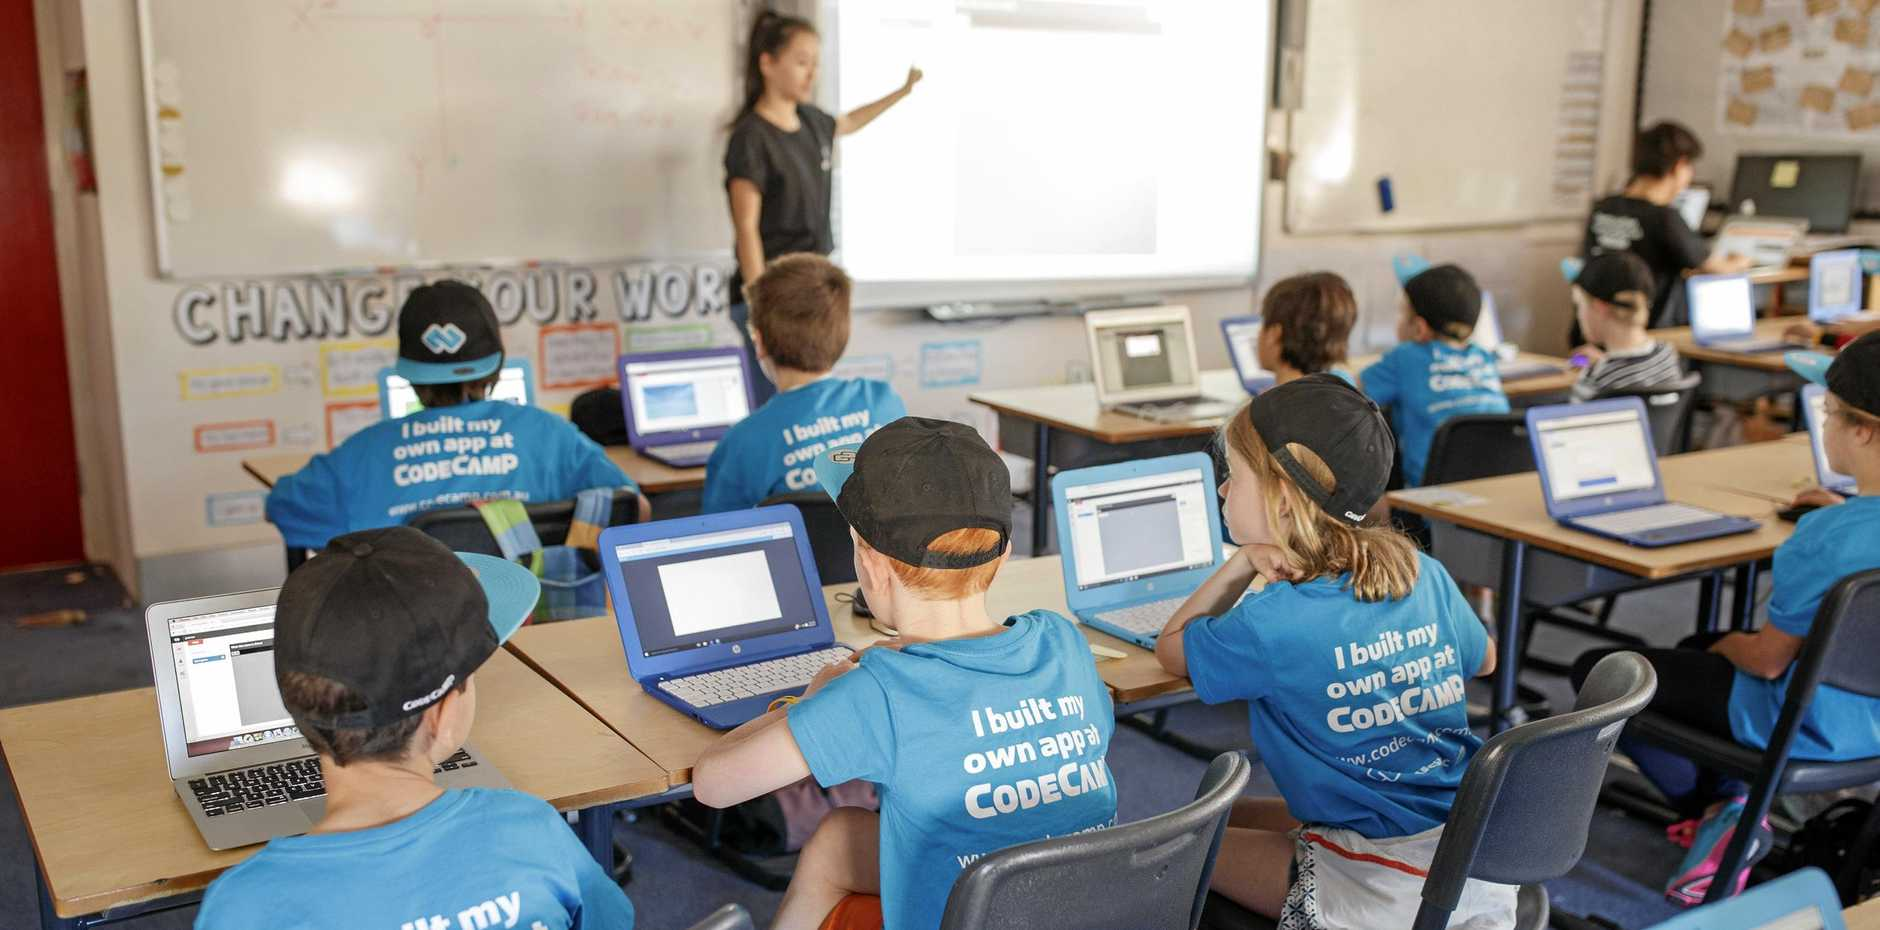 A Code Camp will be held in Proserpine for the first time in April to teach youngsters how to build their own app.